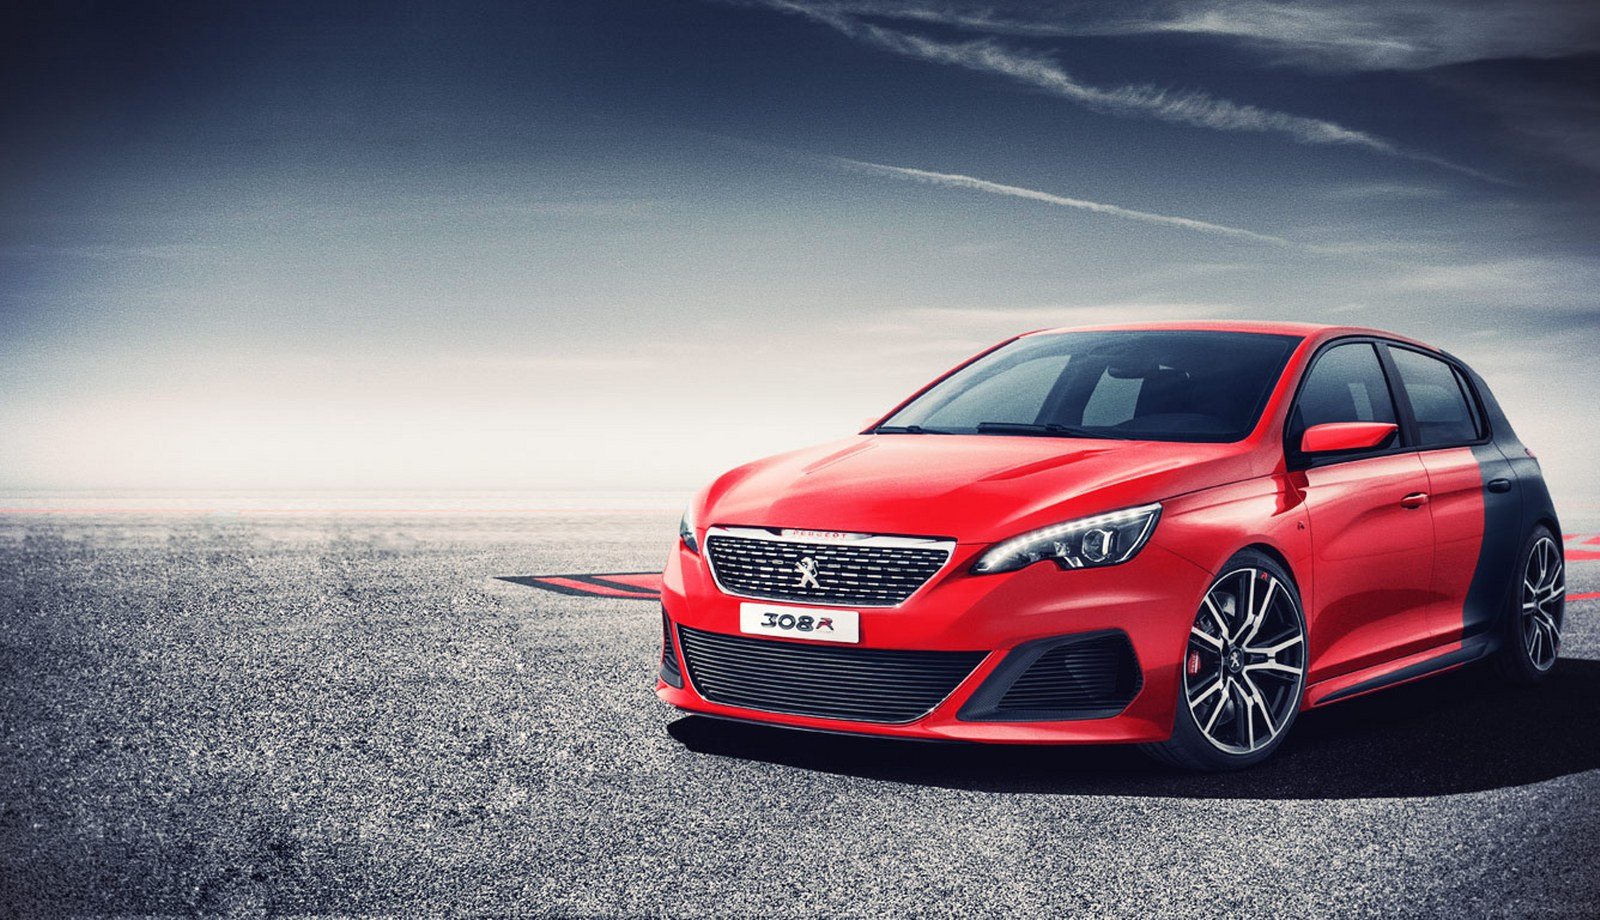 Everything You Need To Know About The Peugeot 308 GTI